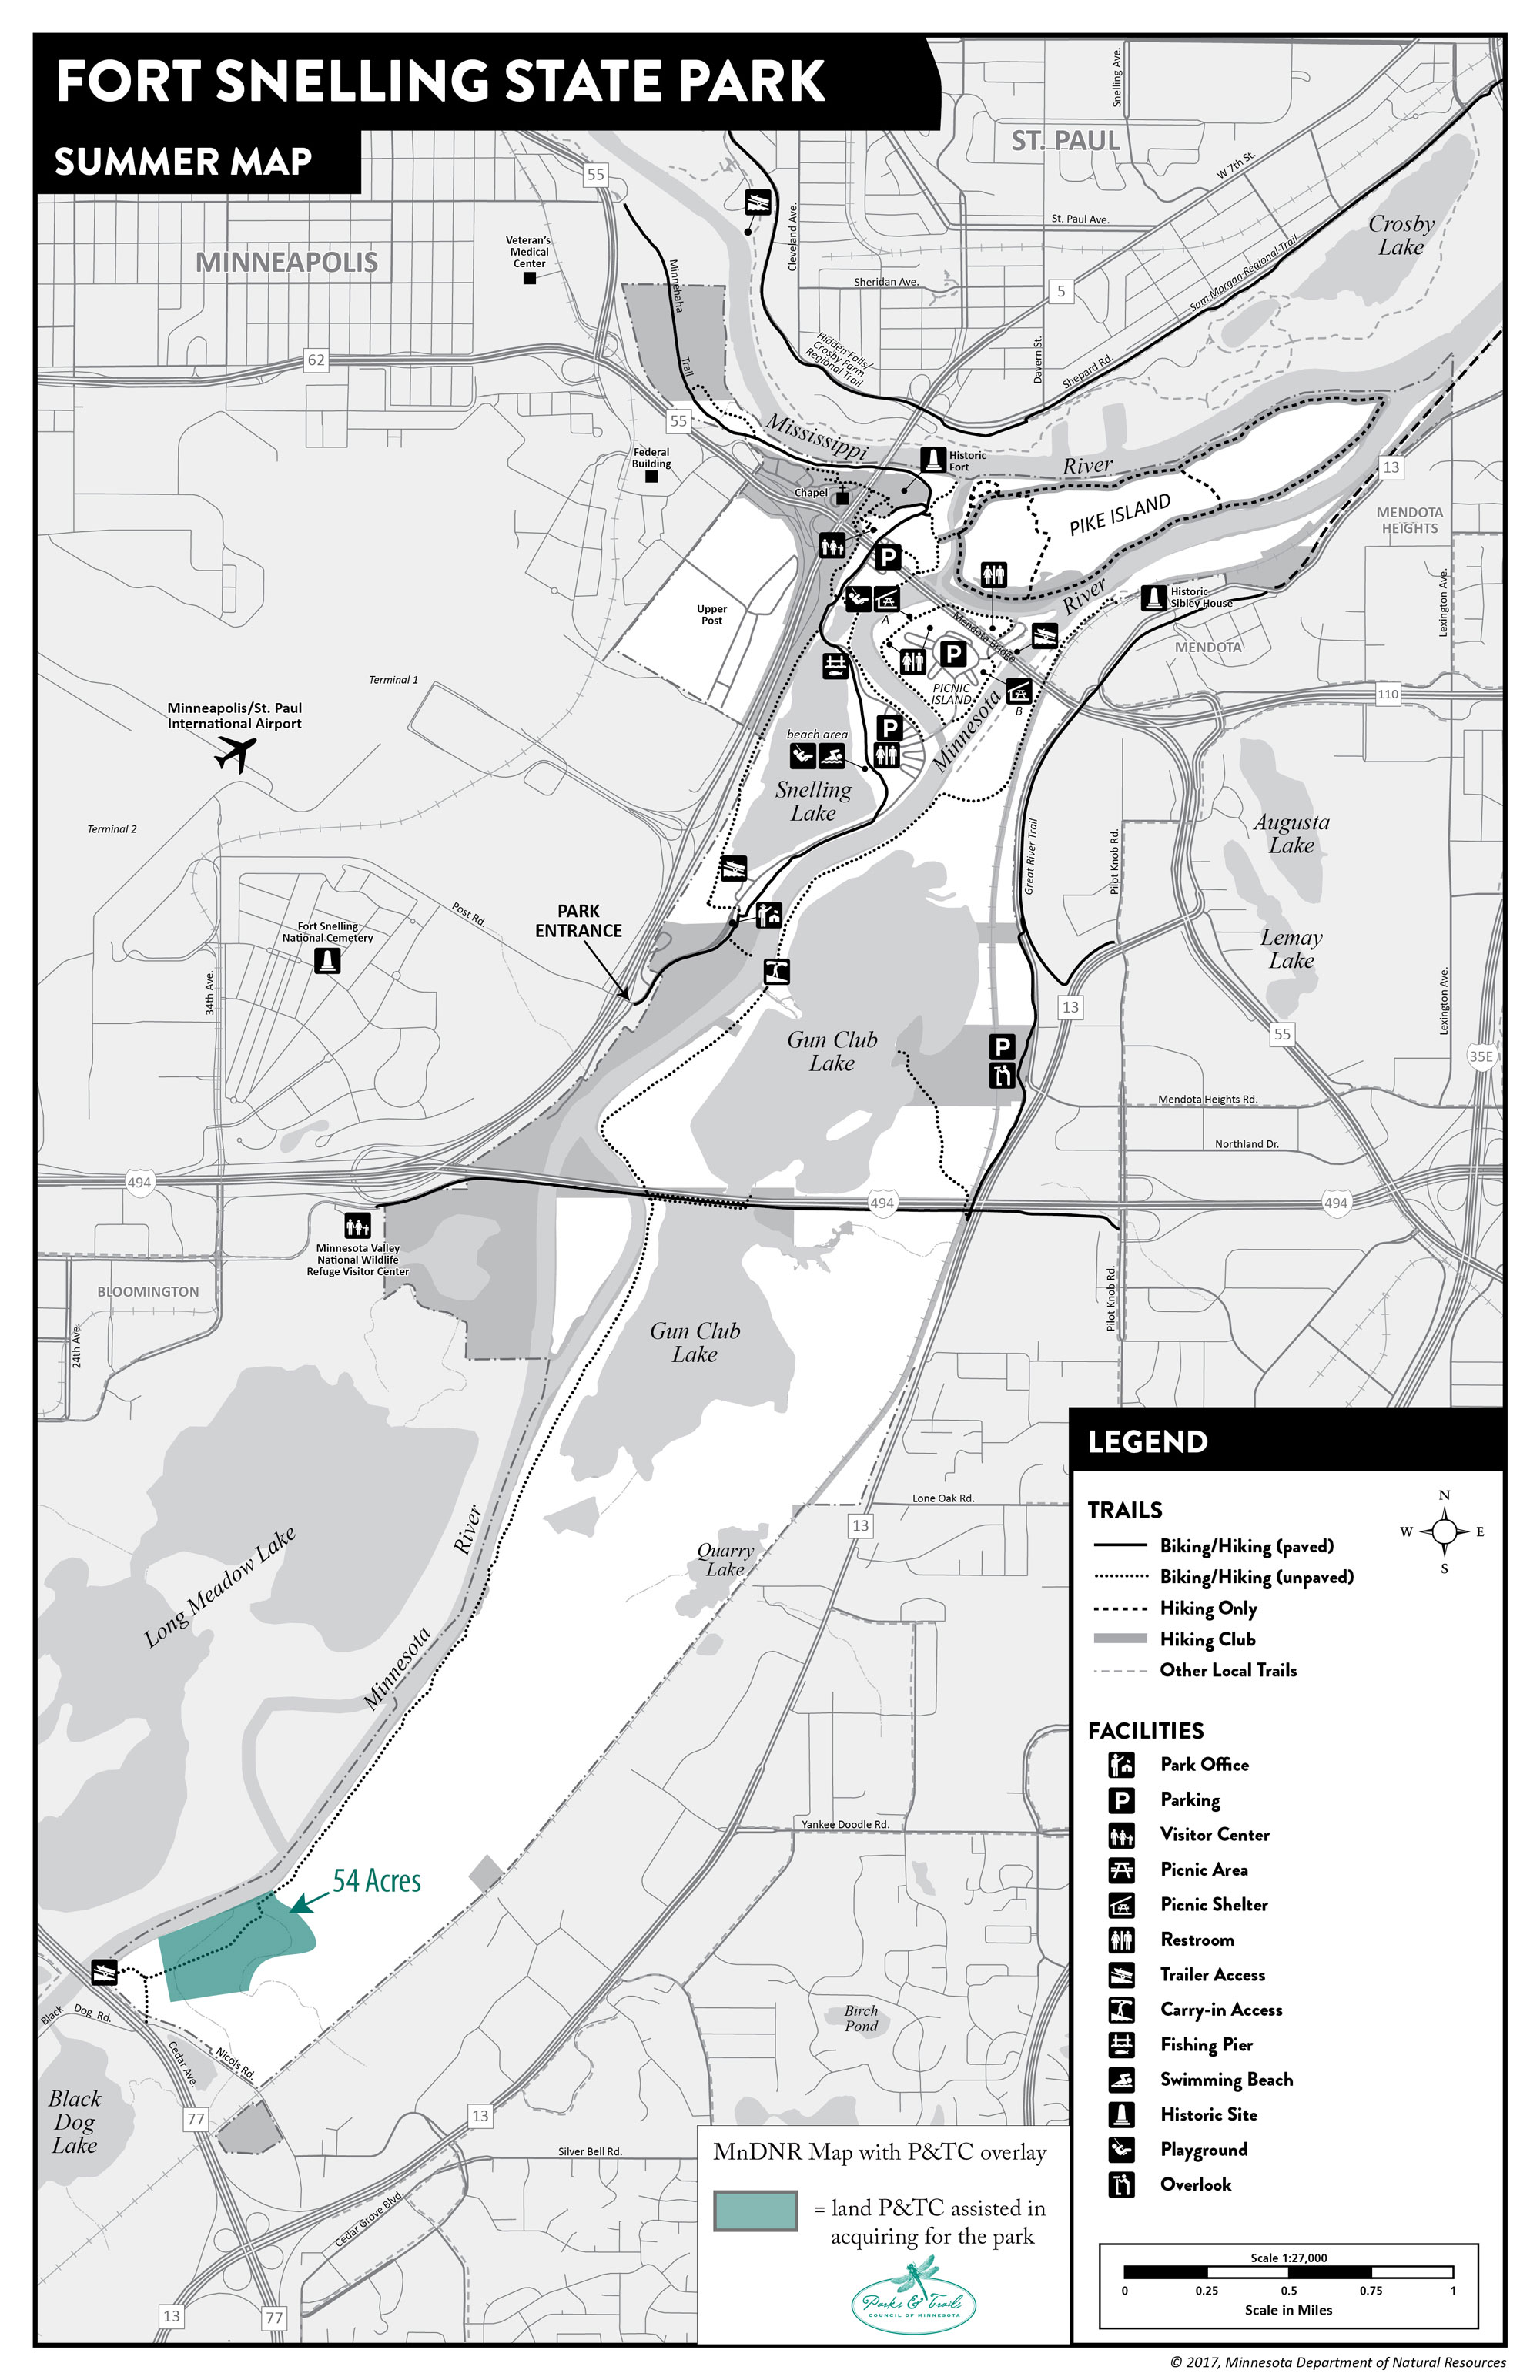 Map of Fort Snelling State Park showing project sites